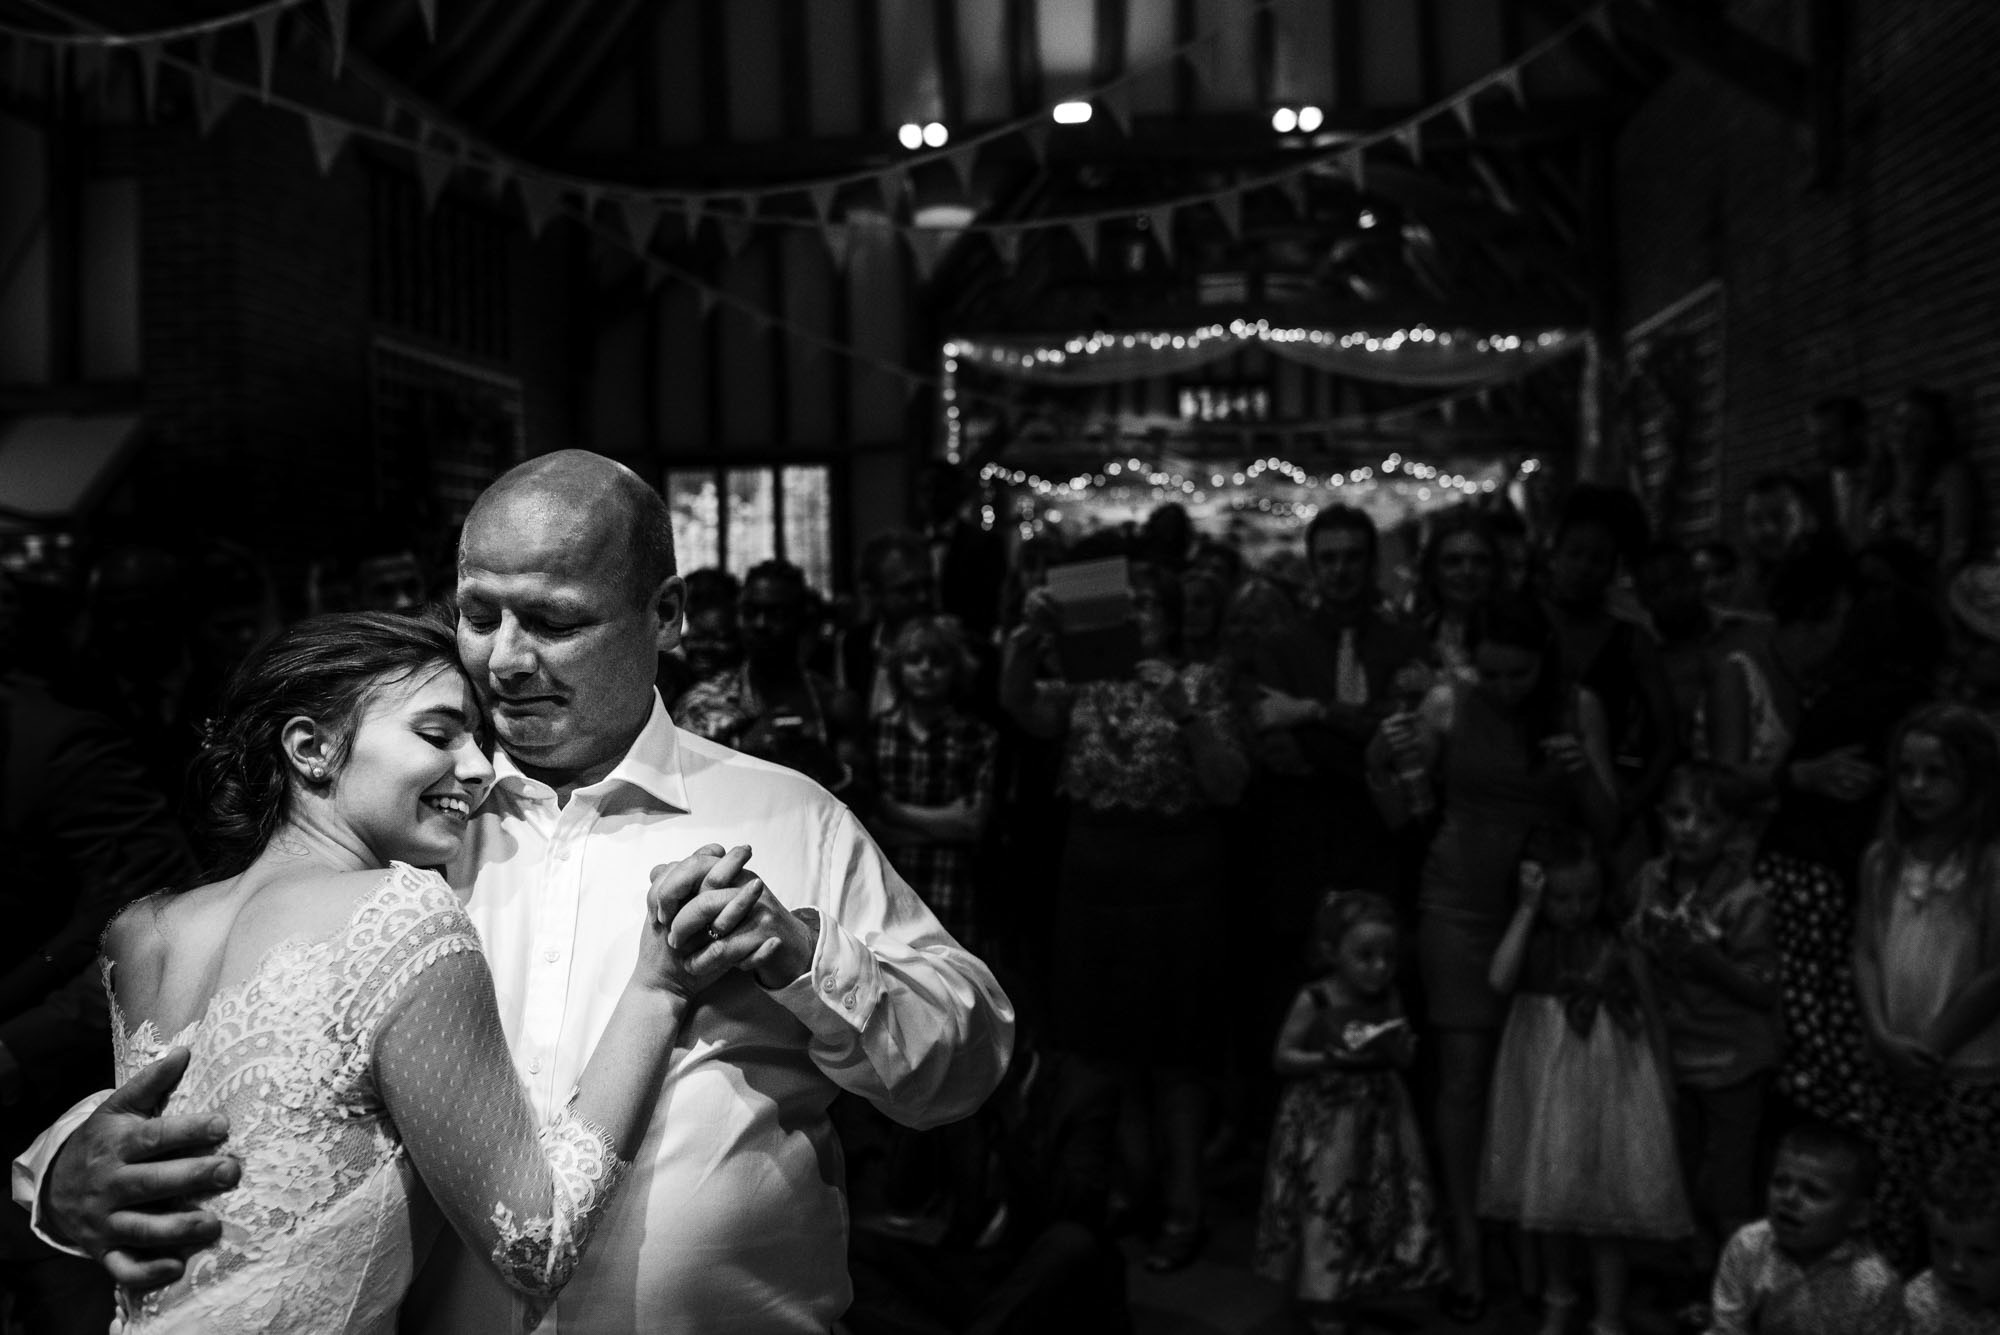 black and White wedding photography-41.jpg